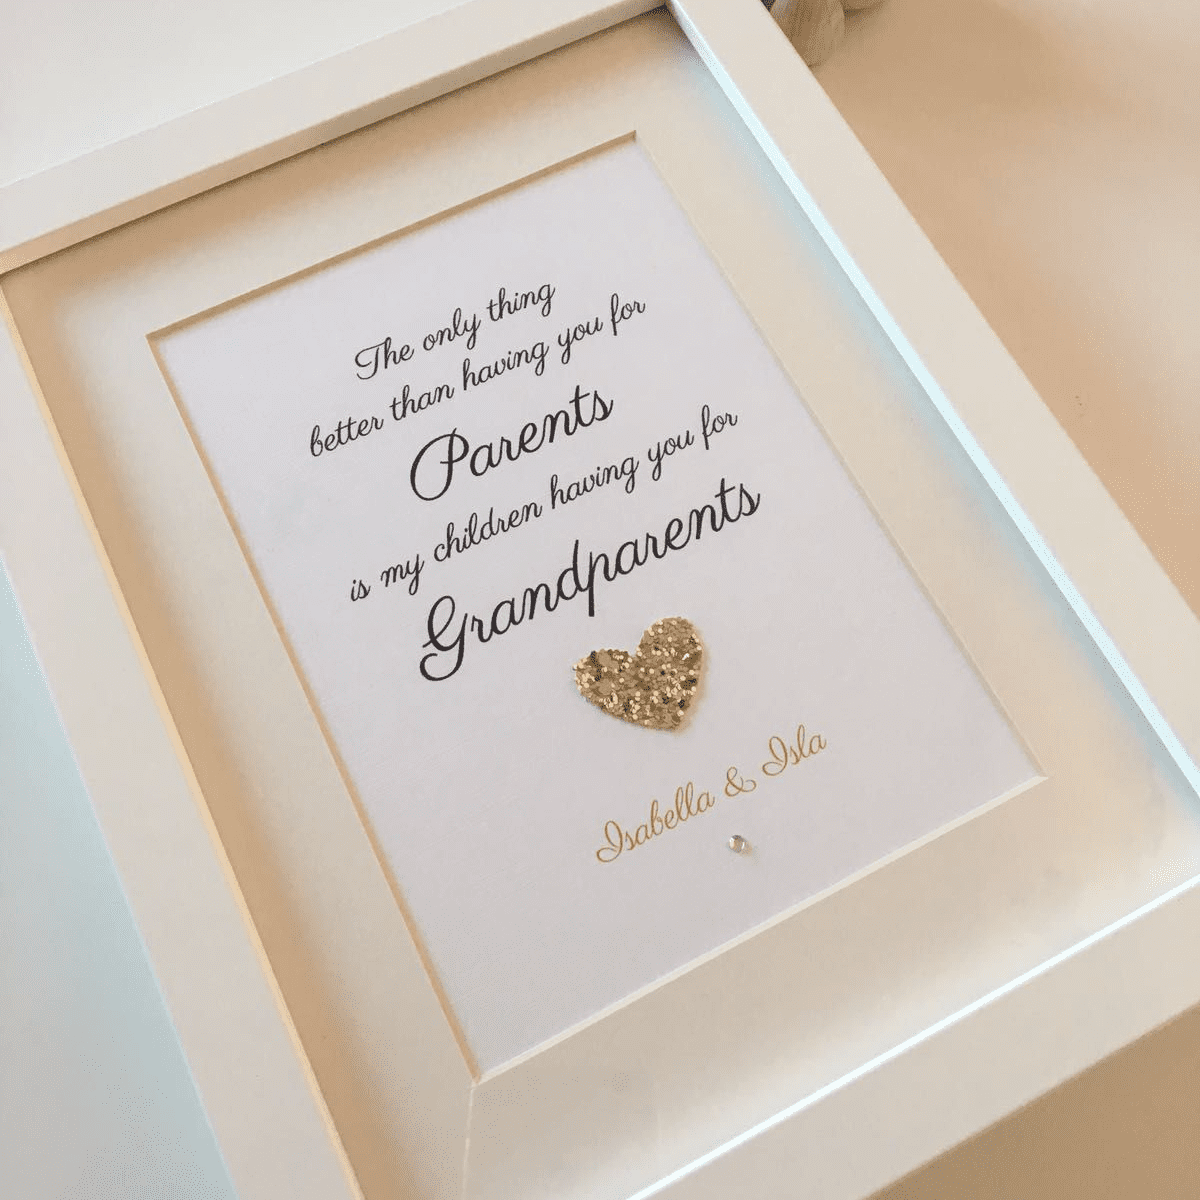 grandparents-the-only-thing-better-flat-framed-print-with-glitter-heart-13068-p.png